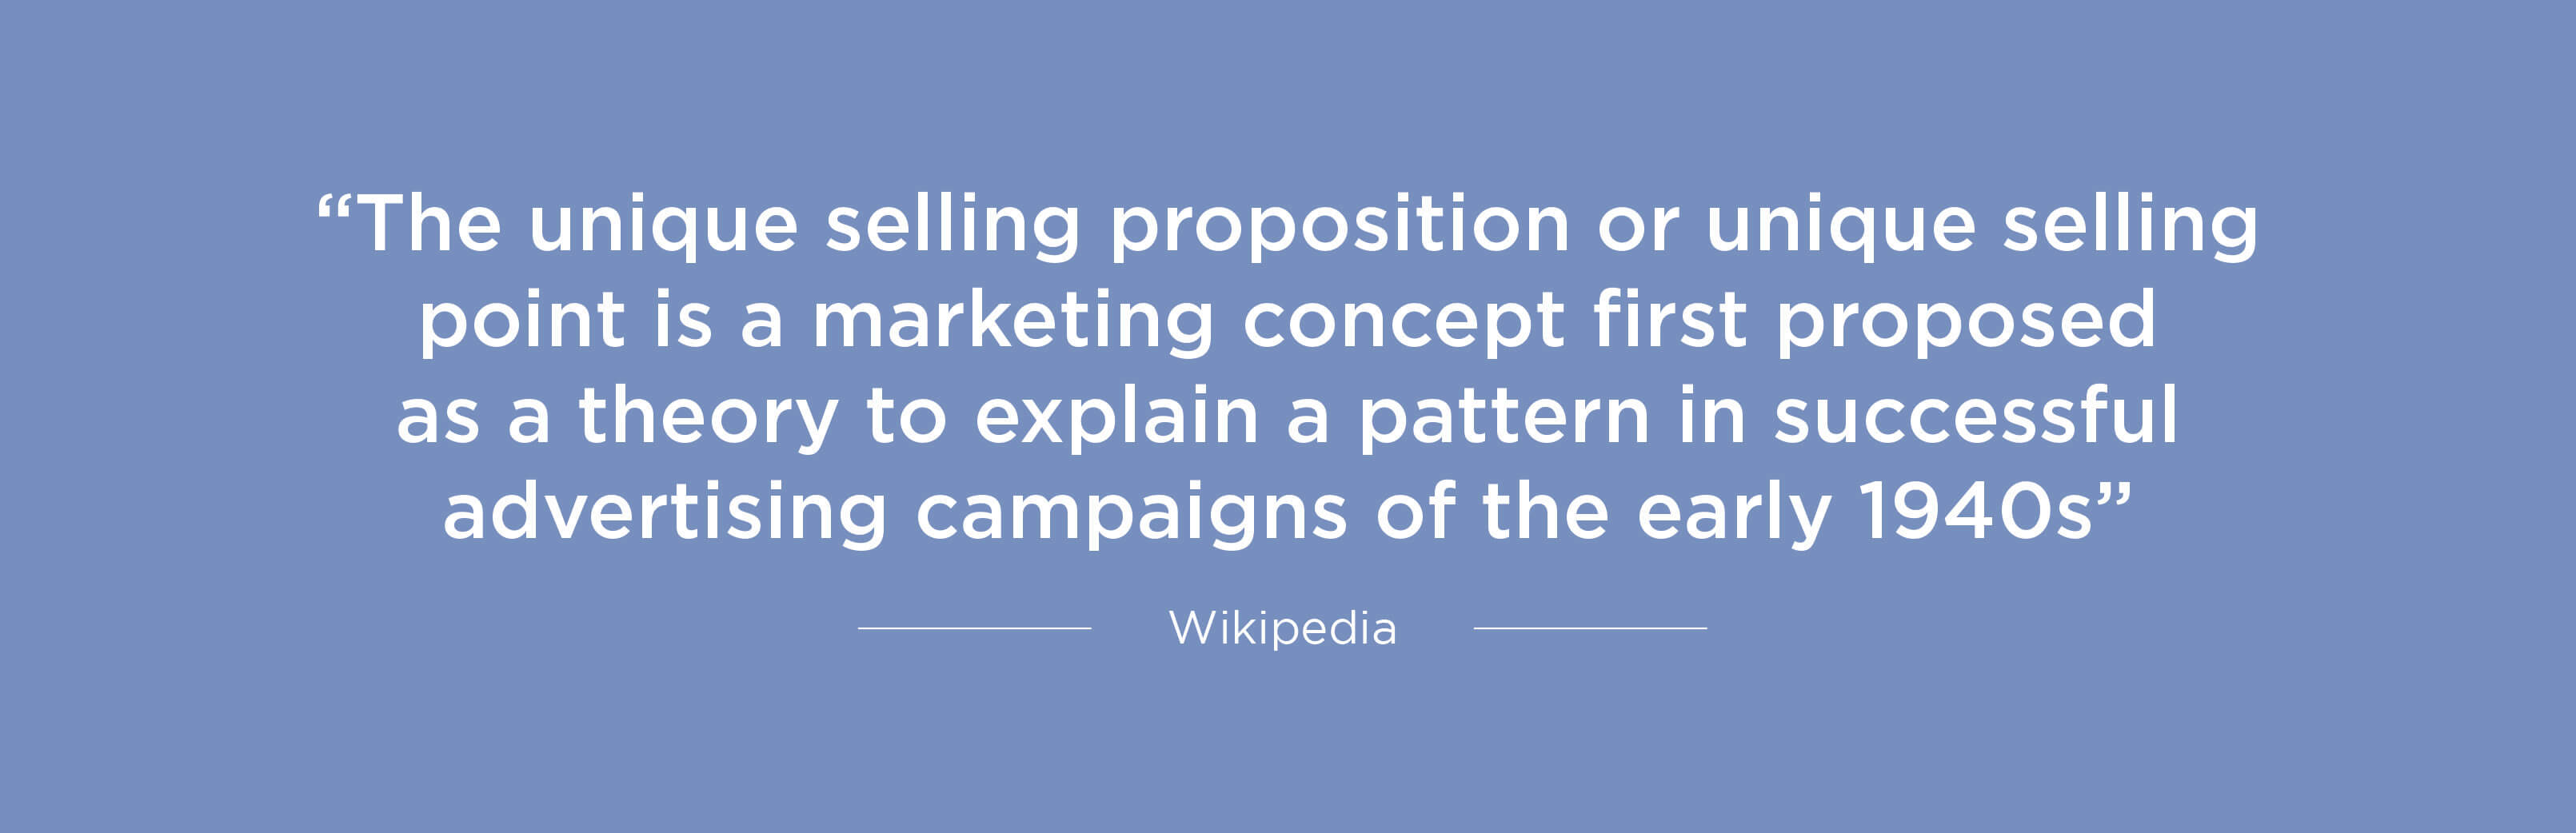 Wikipedia definition of Unique Selling Proposition